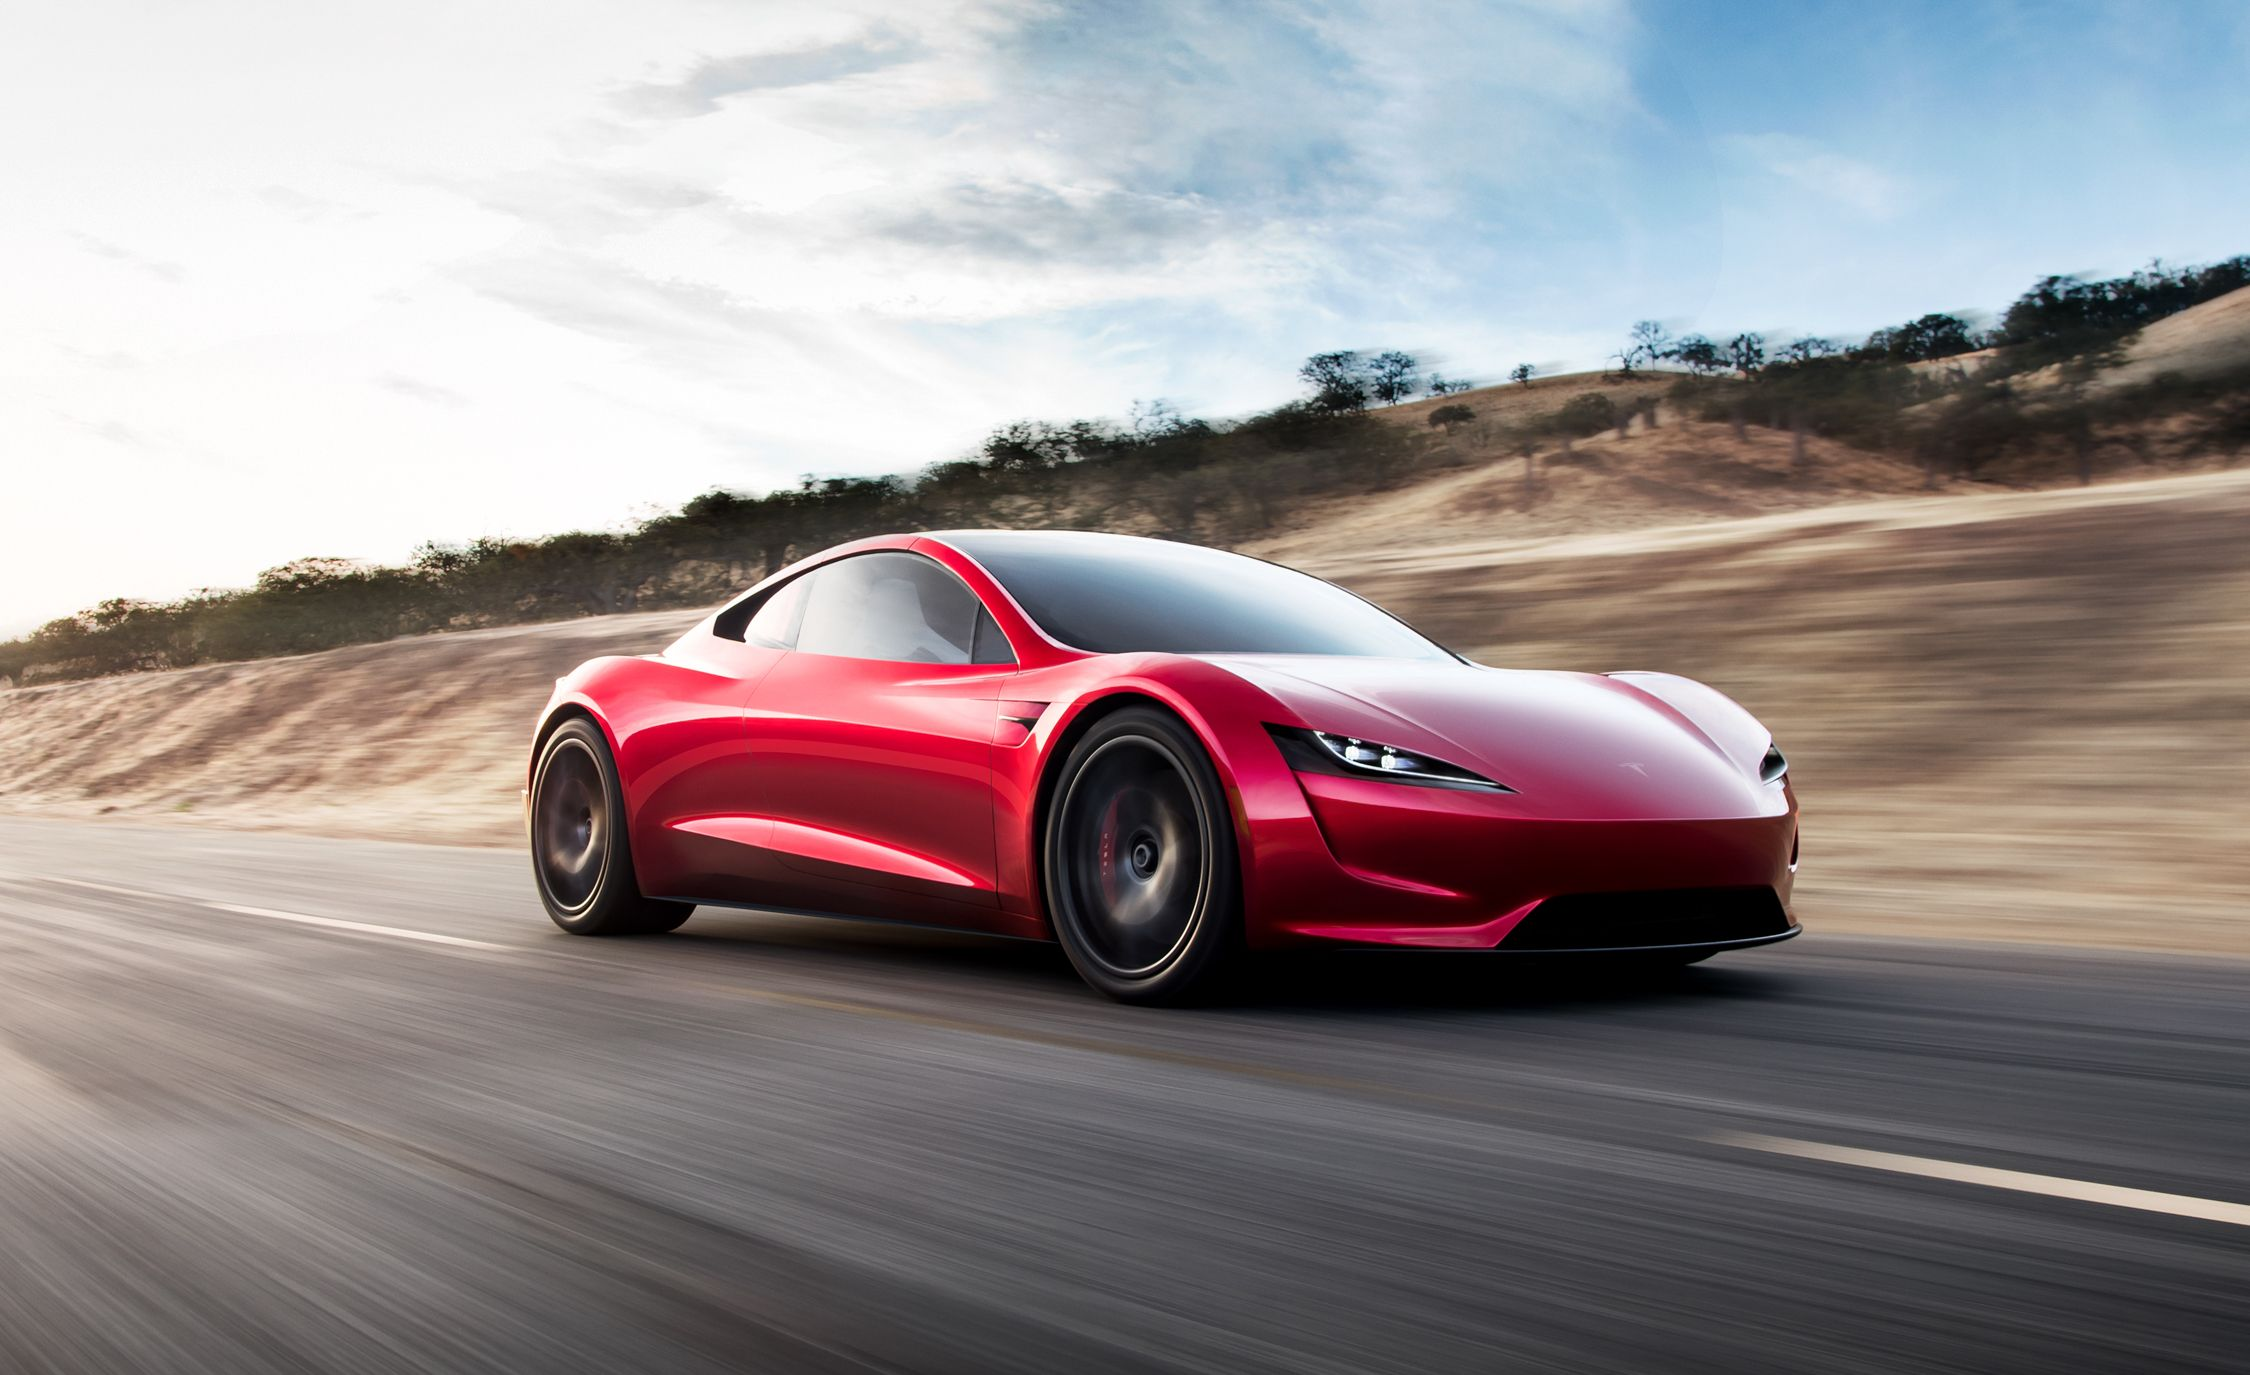 New Tesla Roadster First Look Zero To 60 In 1 9 Seconds 250 Mph Top Sd 620 Mile Range